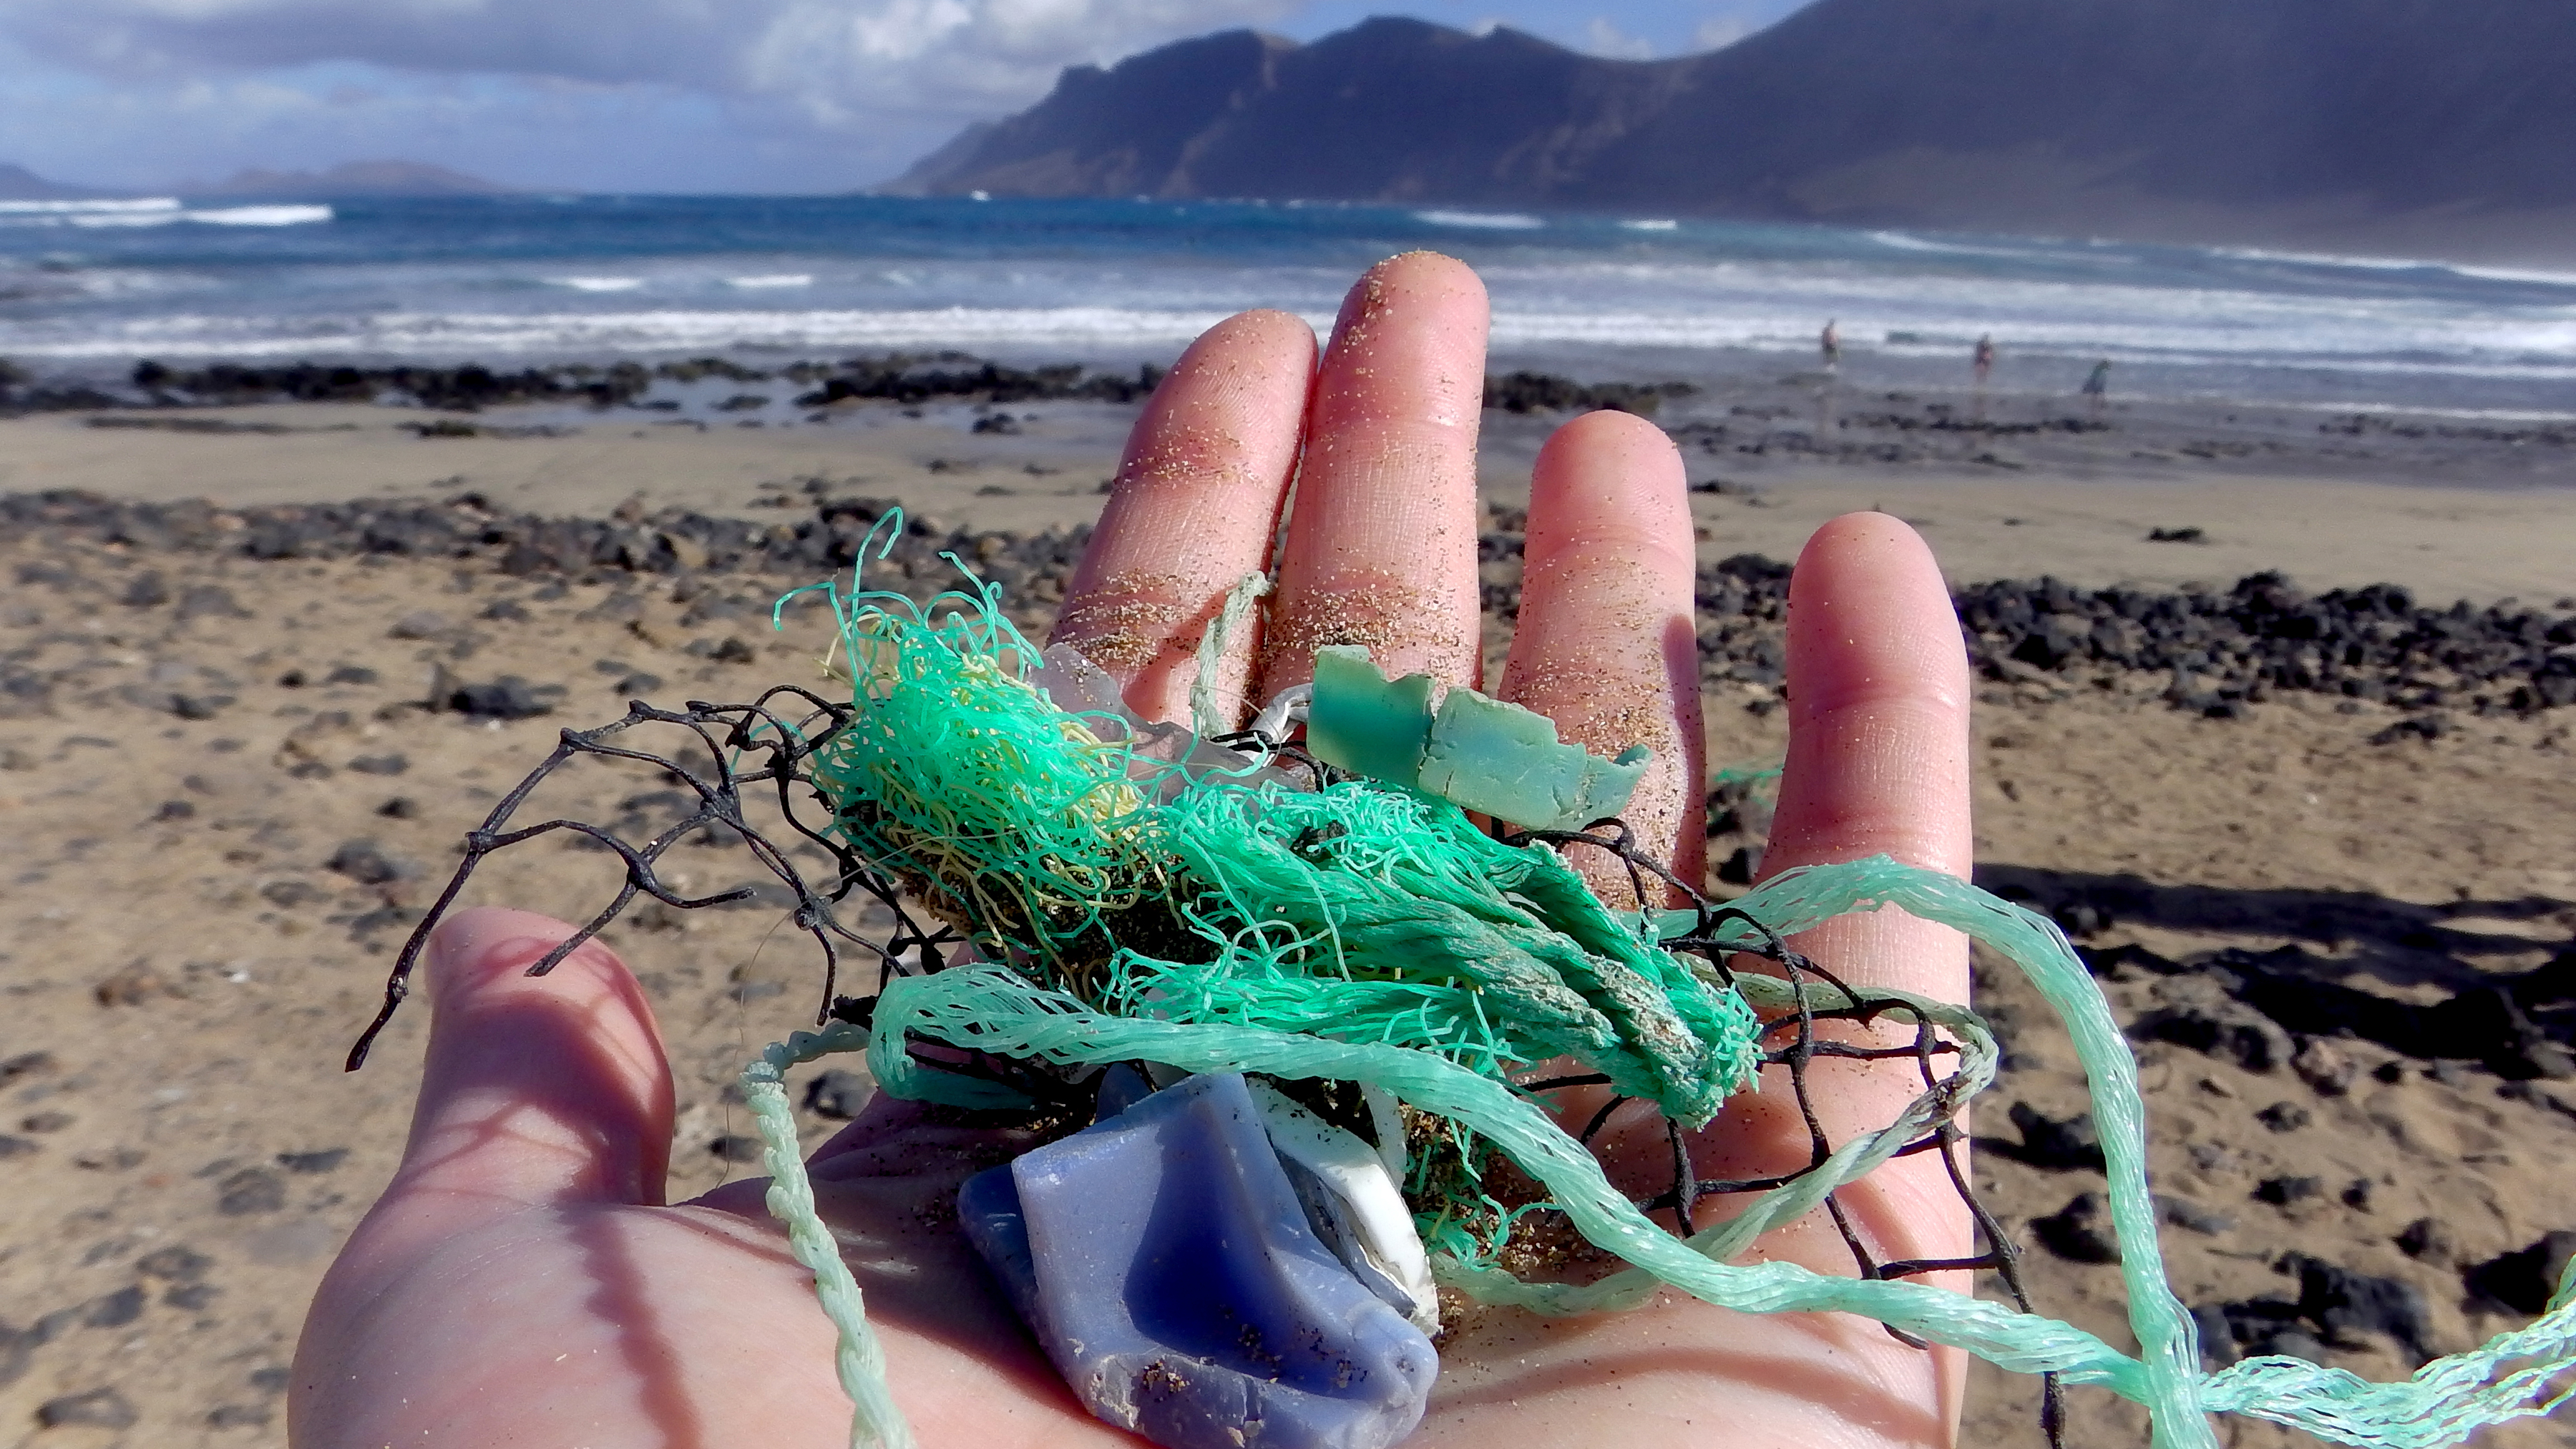 Study author Jenna Jambeck of the University of Georgia collects plastic samples from a beach near Caleta de Famara, Canary Islands, Spain.